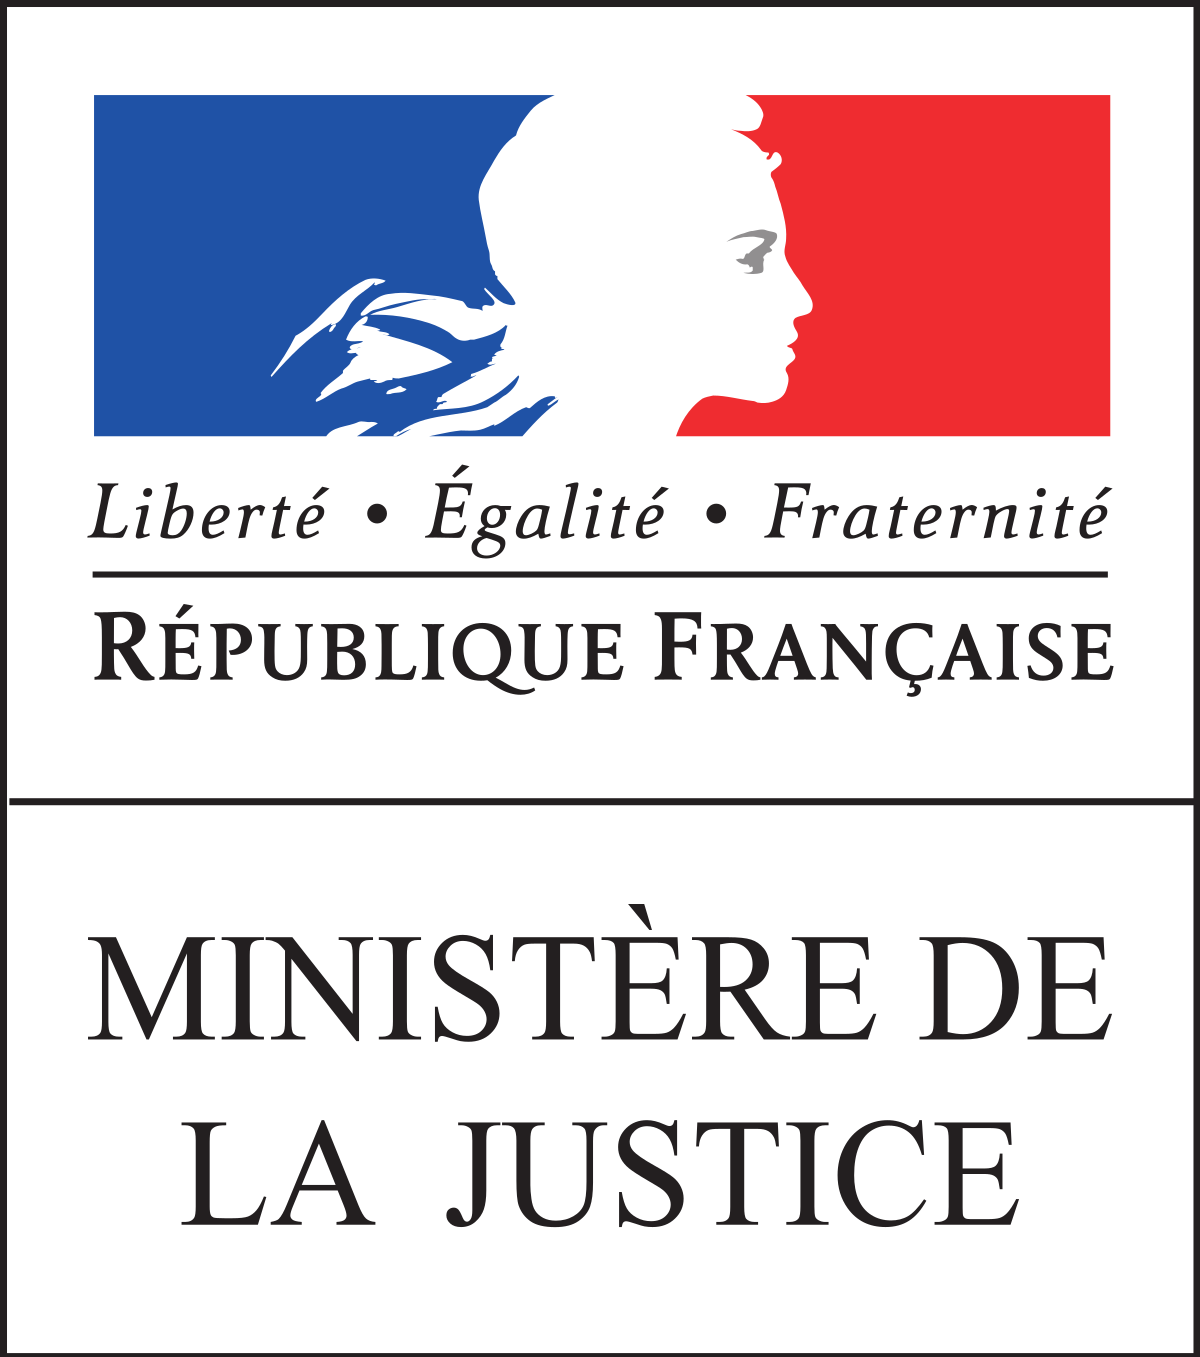 Ministere de la Justice : Official Mail Recording and Management System.